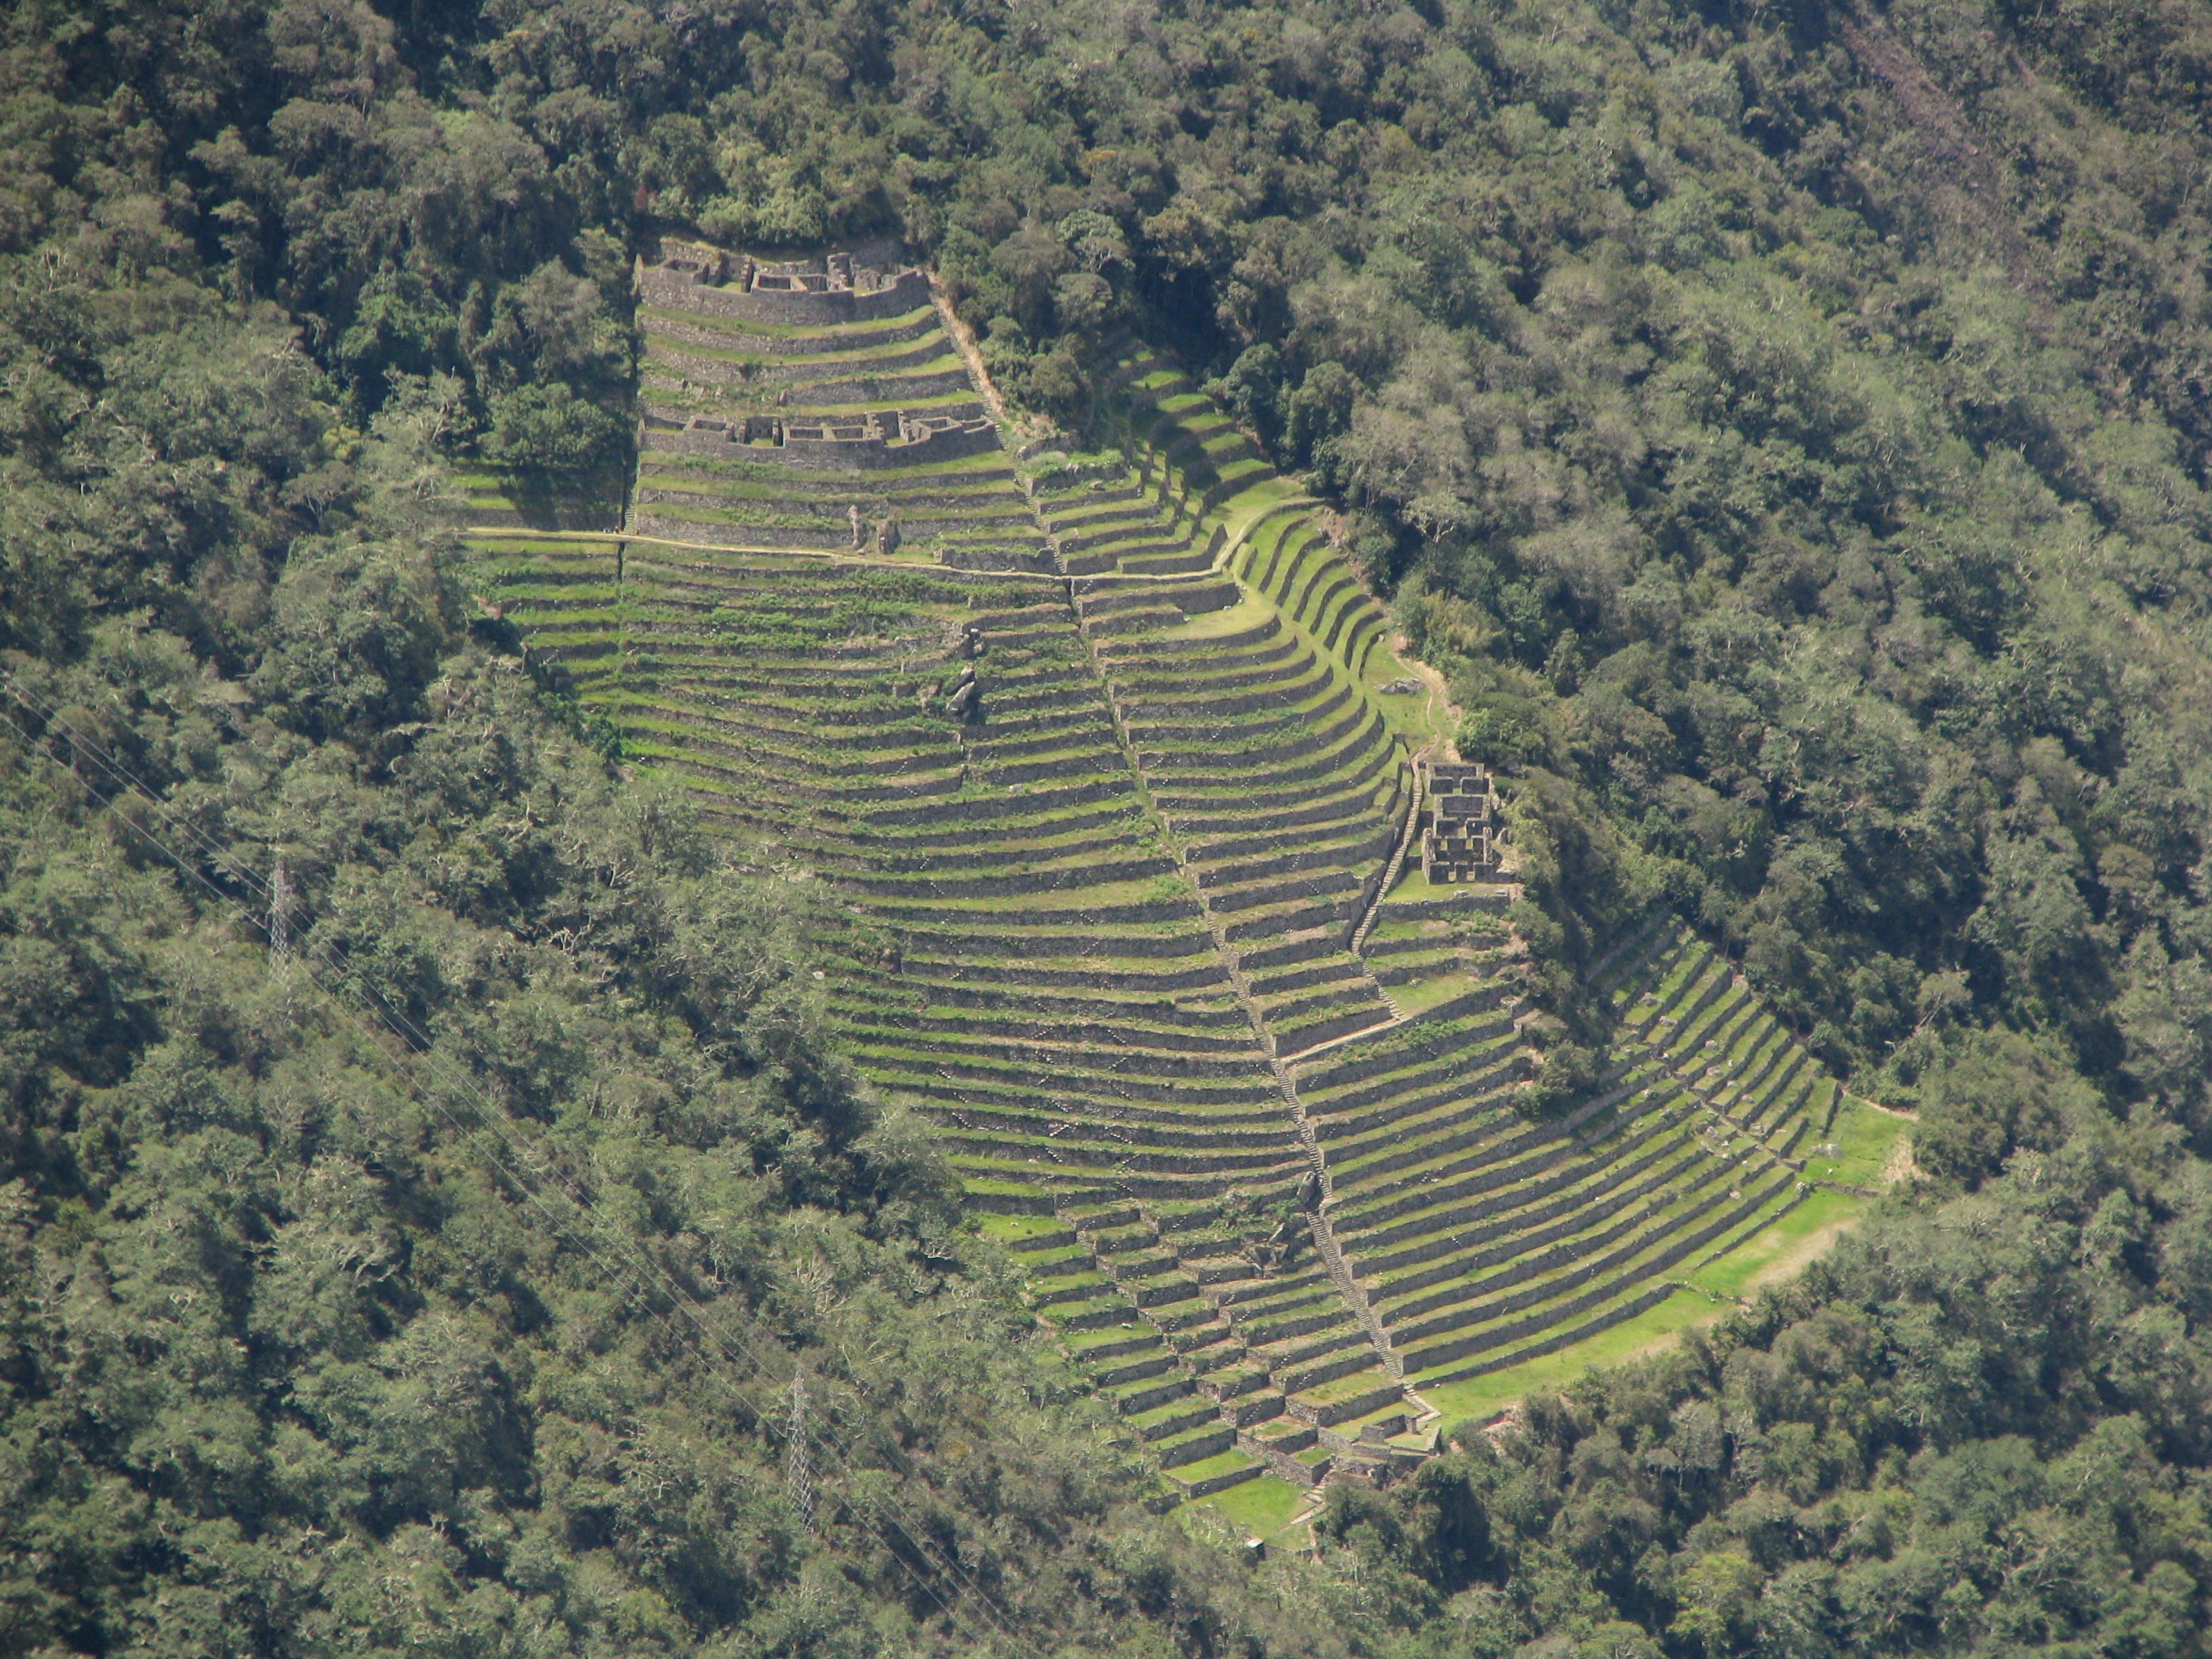 Terrace Farming, Inca Civilization